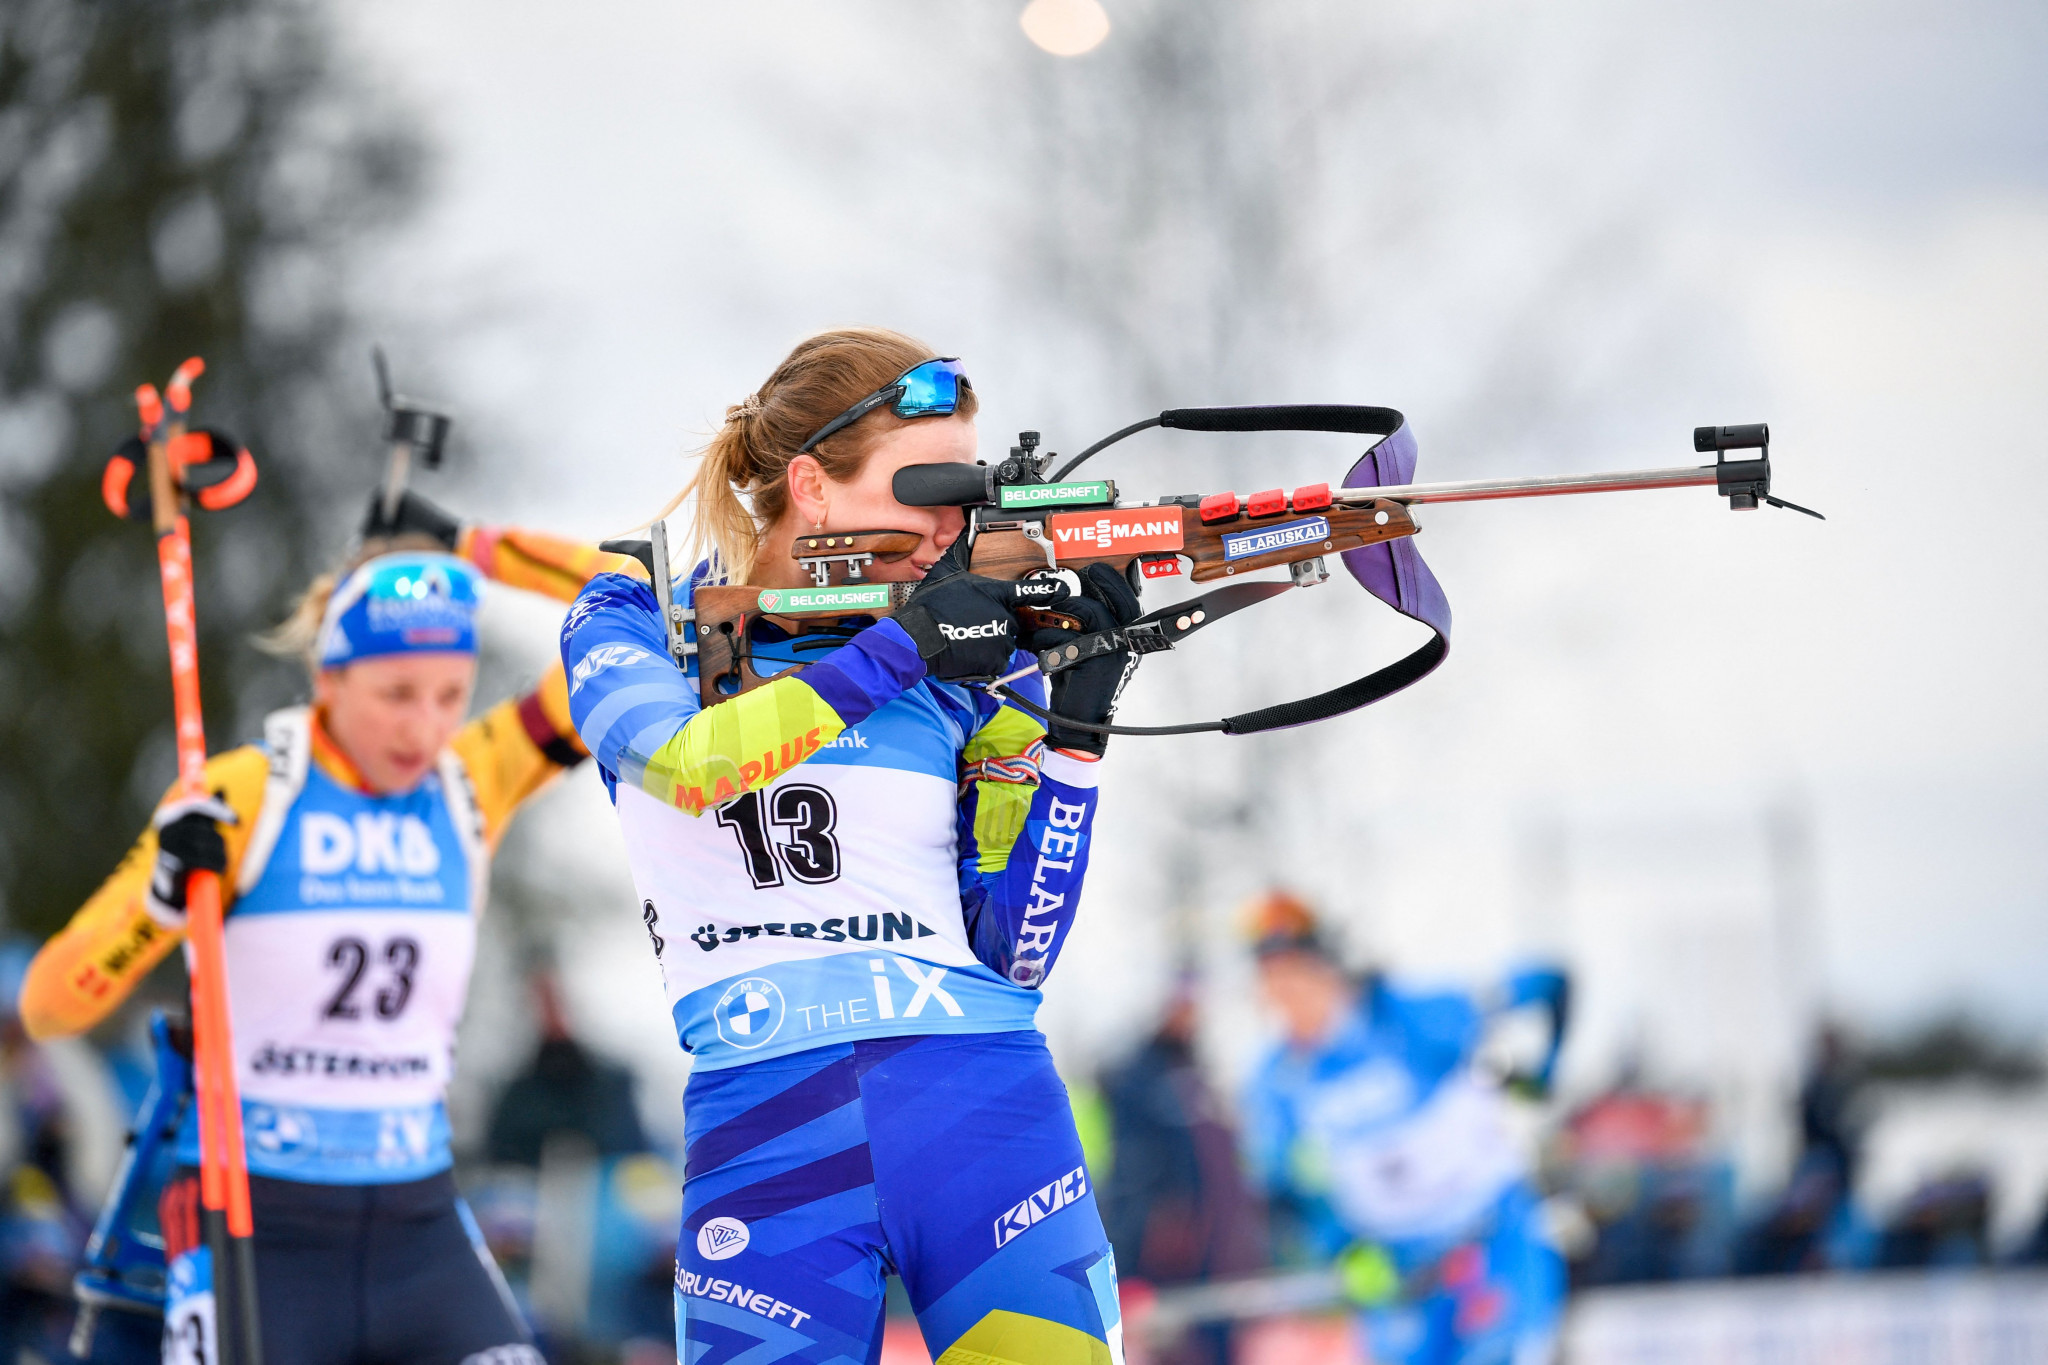 Belarus removed as host of IBU World Cup event in 2022